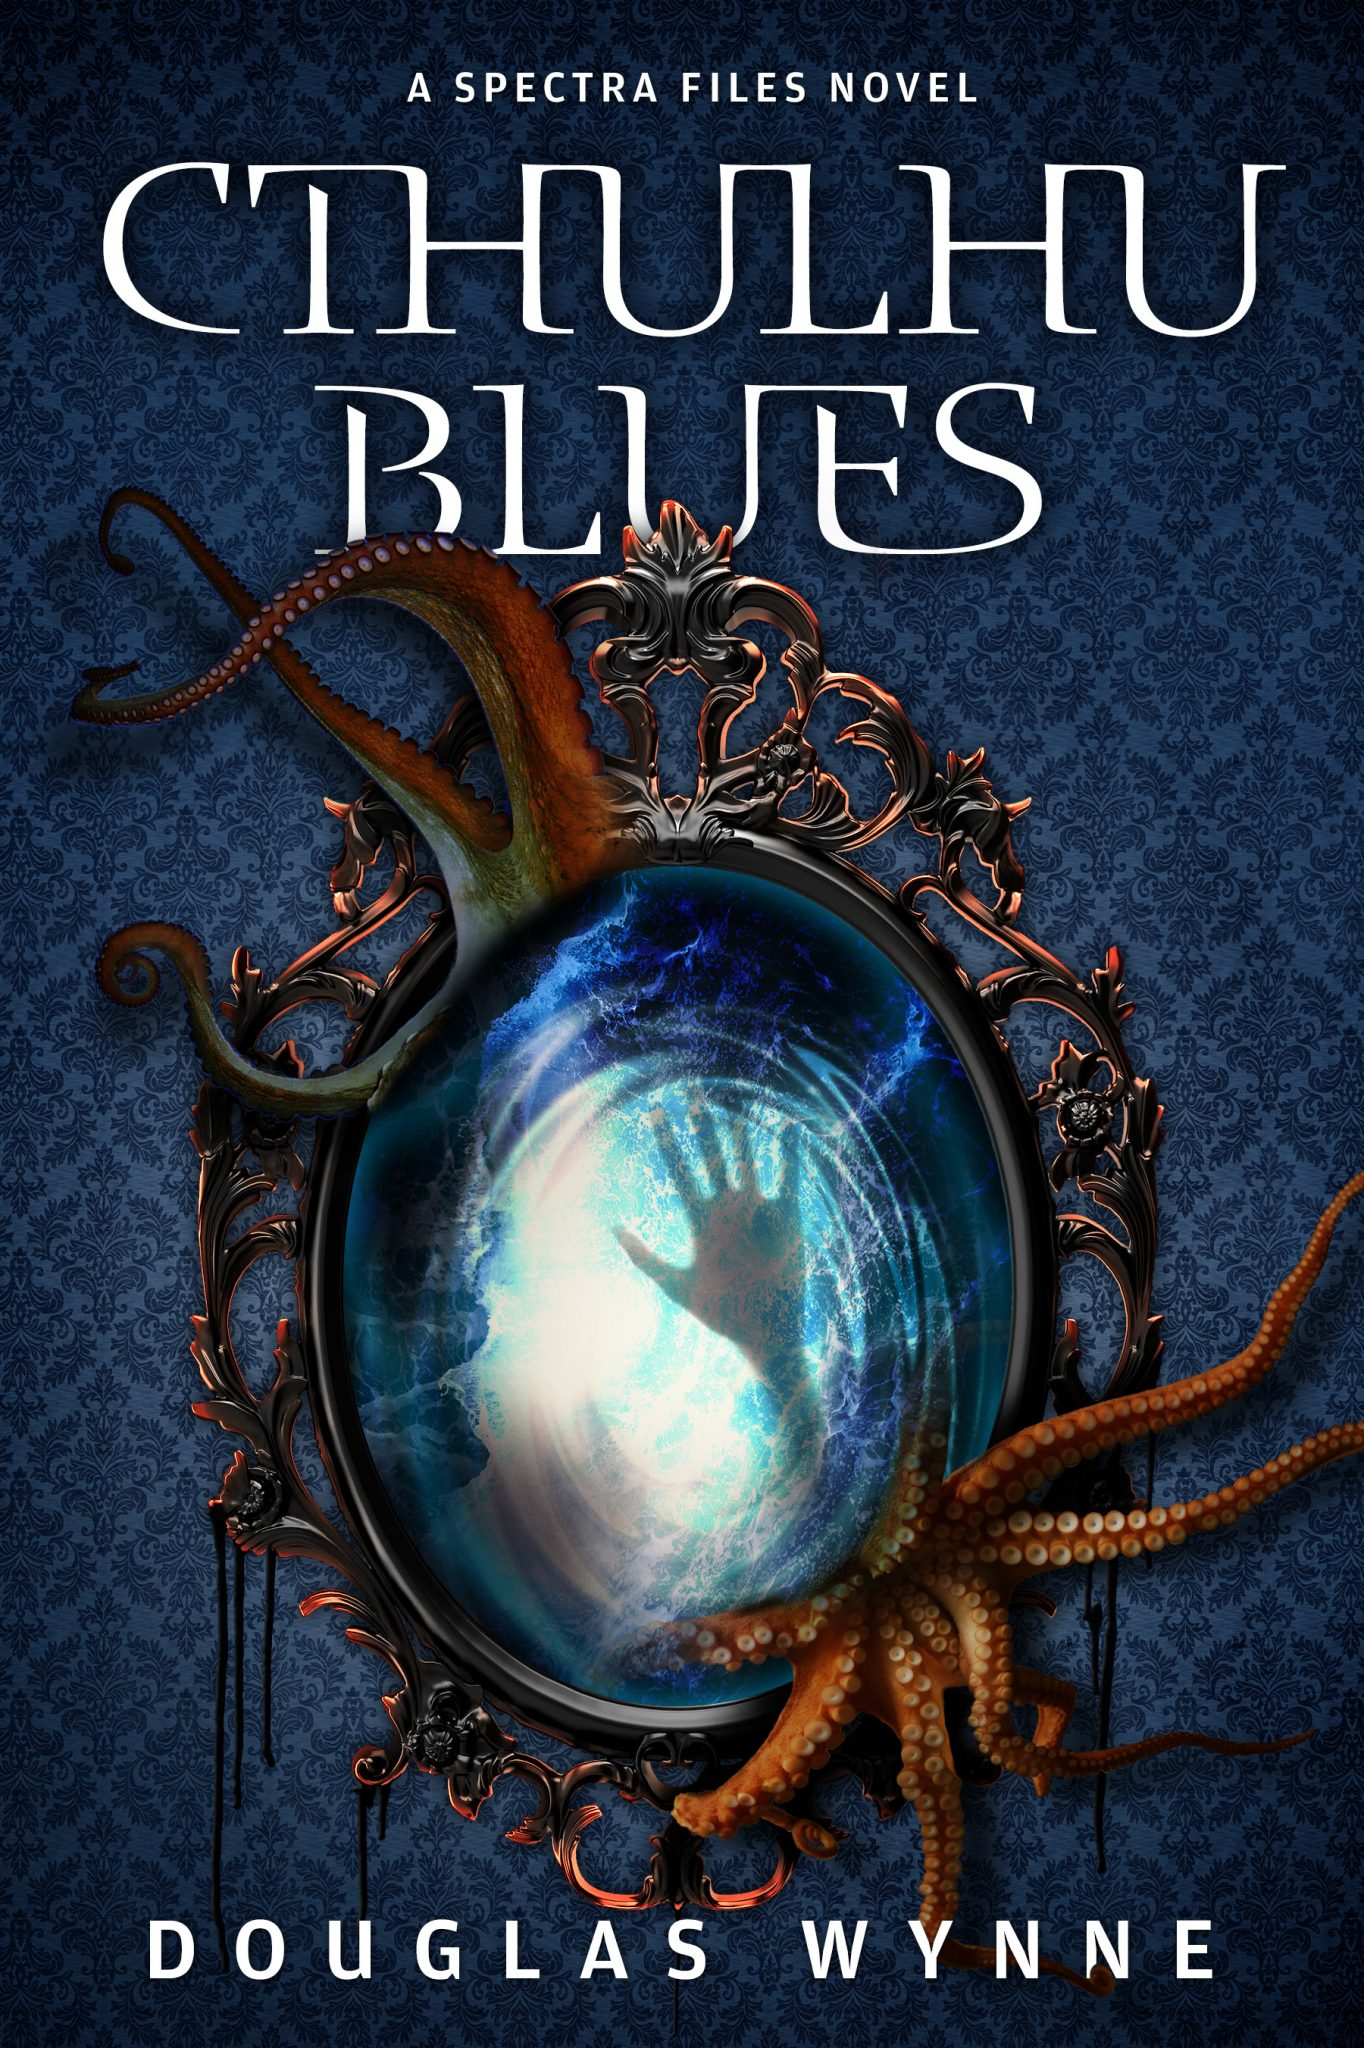 Review: 'Cthulhu Blues' by Douglas Wynne is a high-octane ride of existential dread